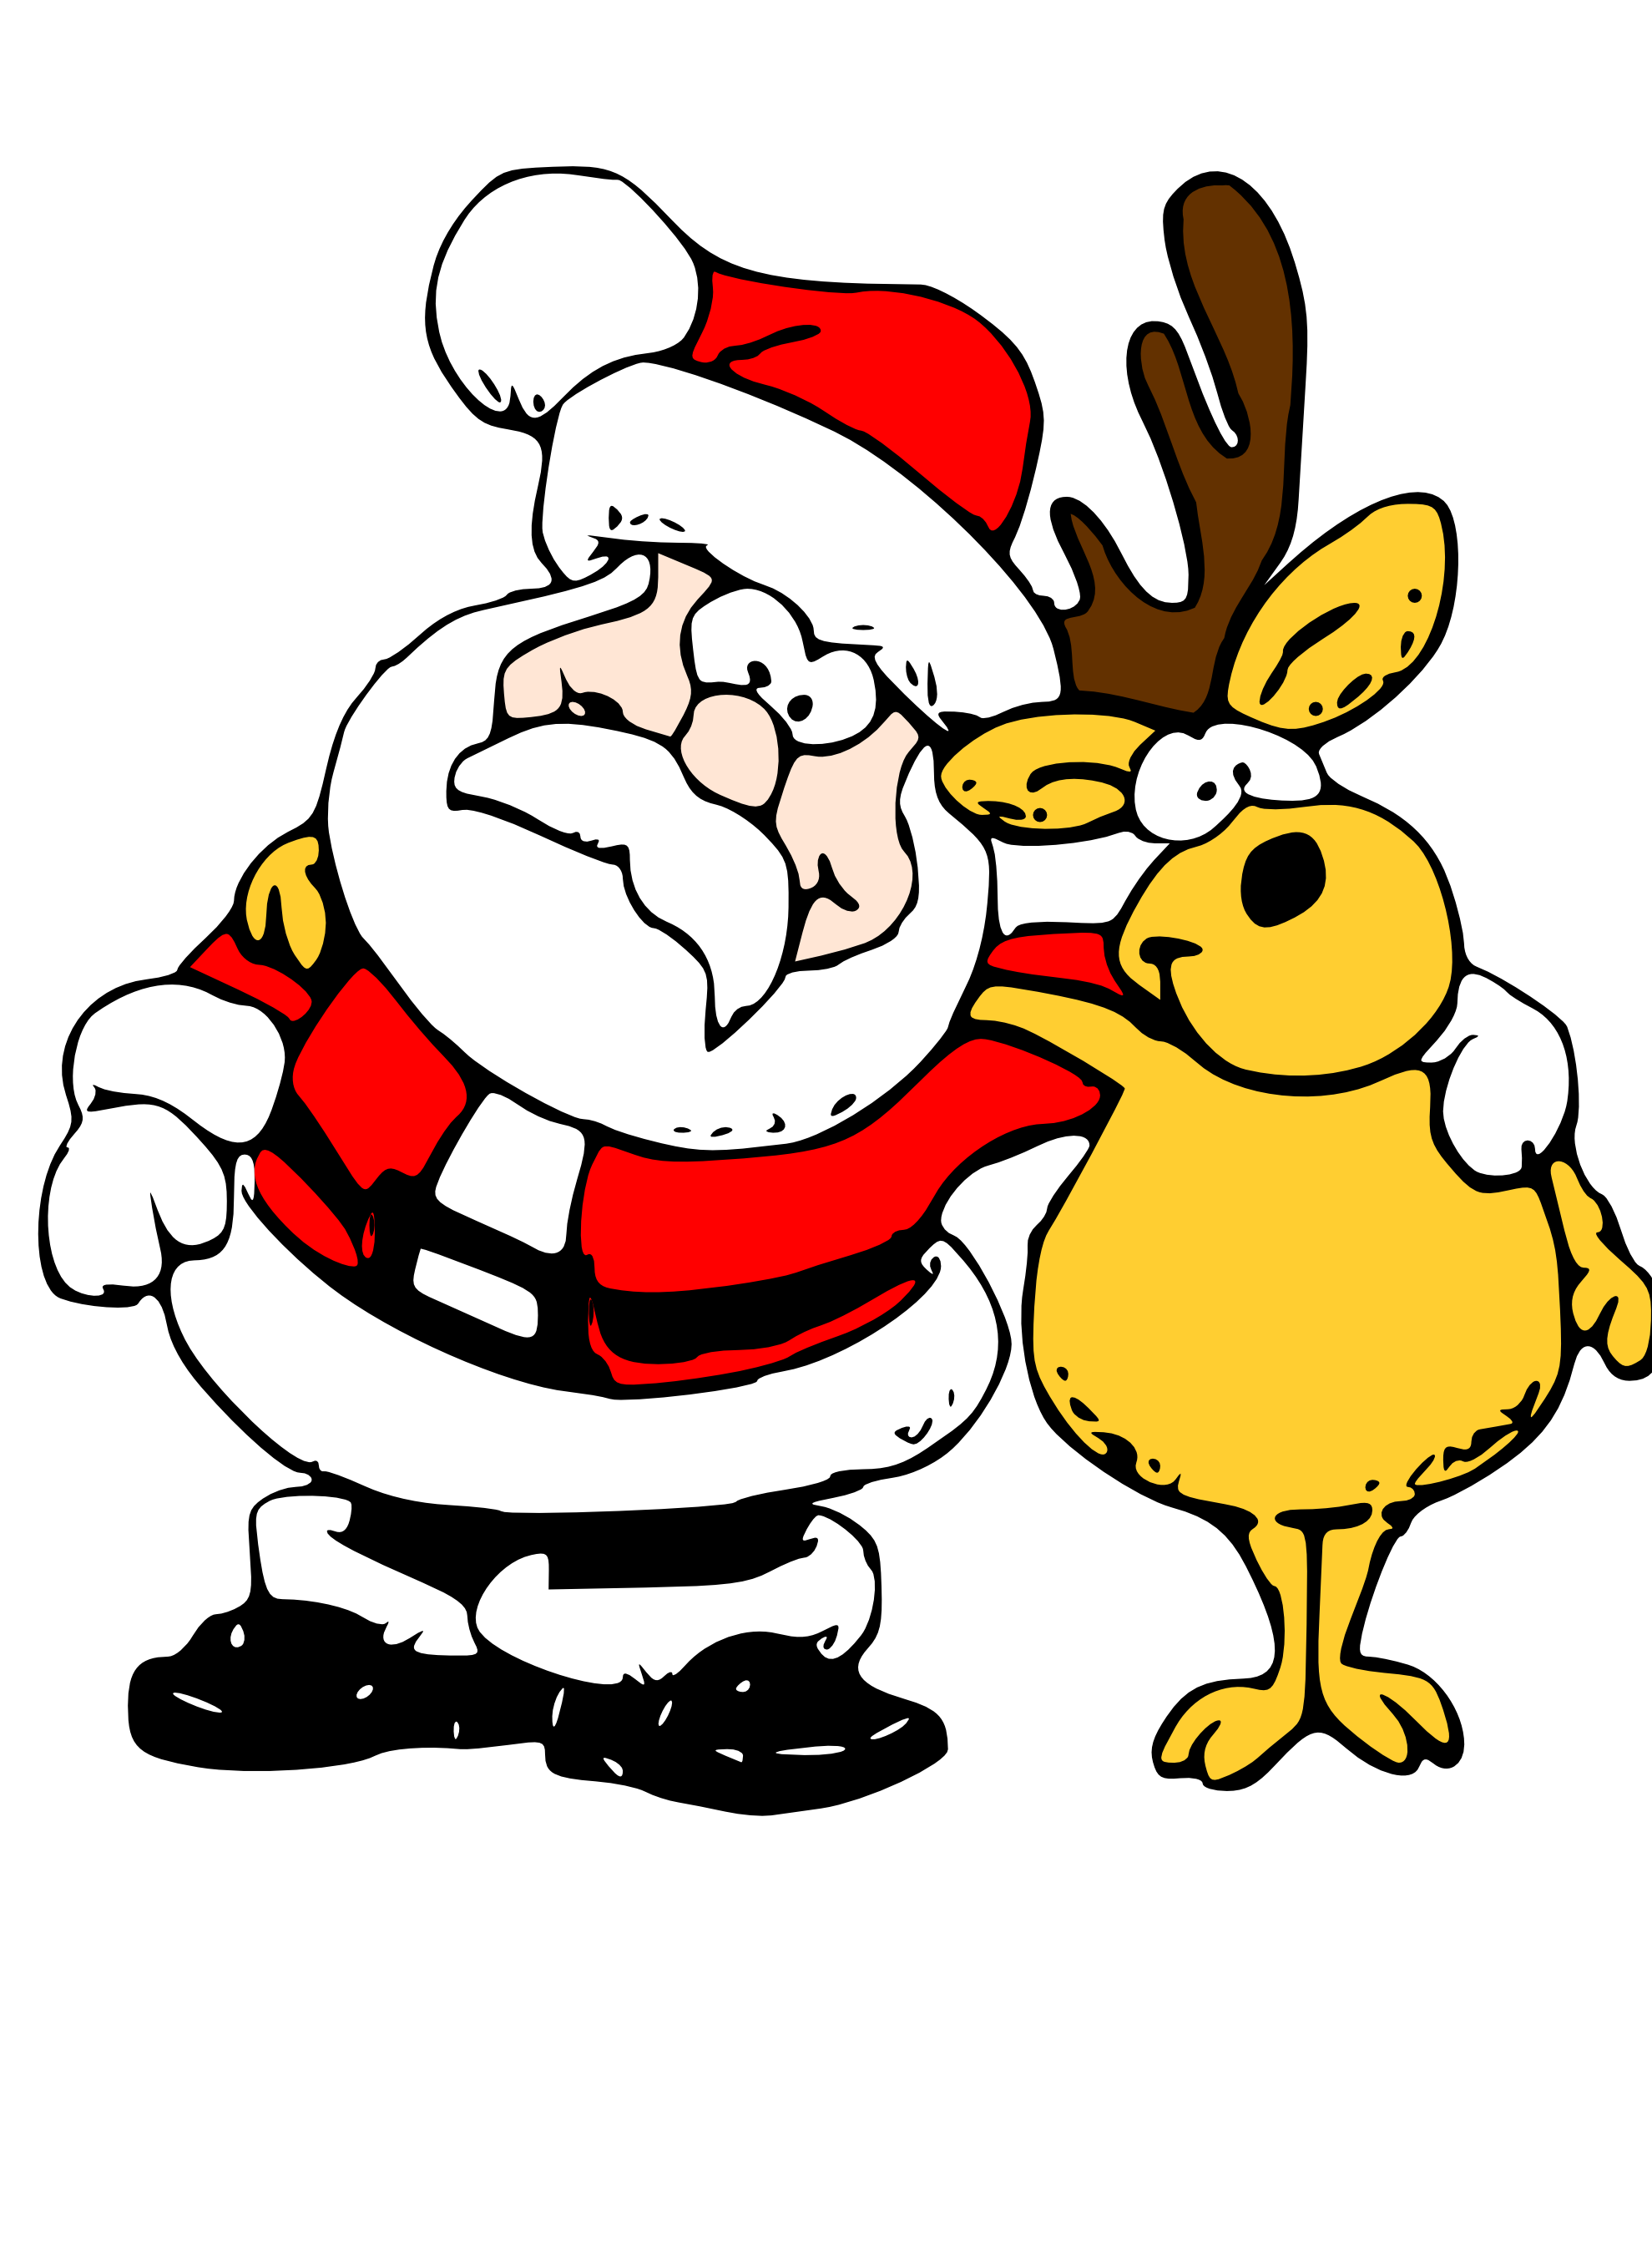 Clip Art: Santa and Reindeer | Clipart Panda - Free Clipart Images